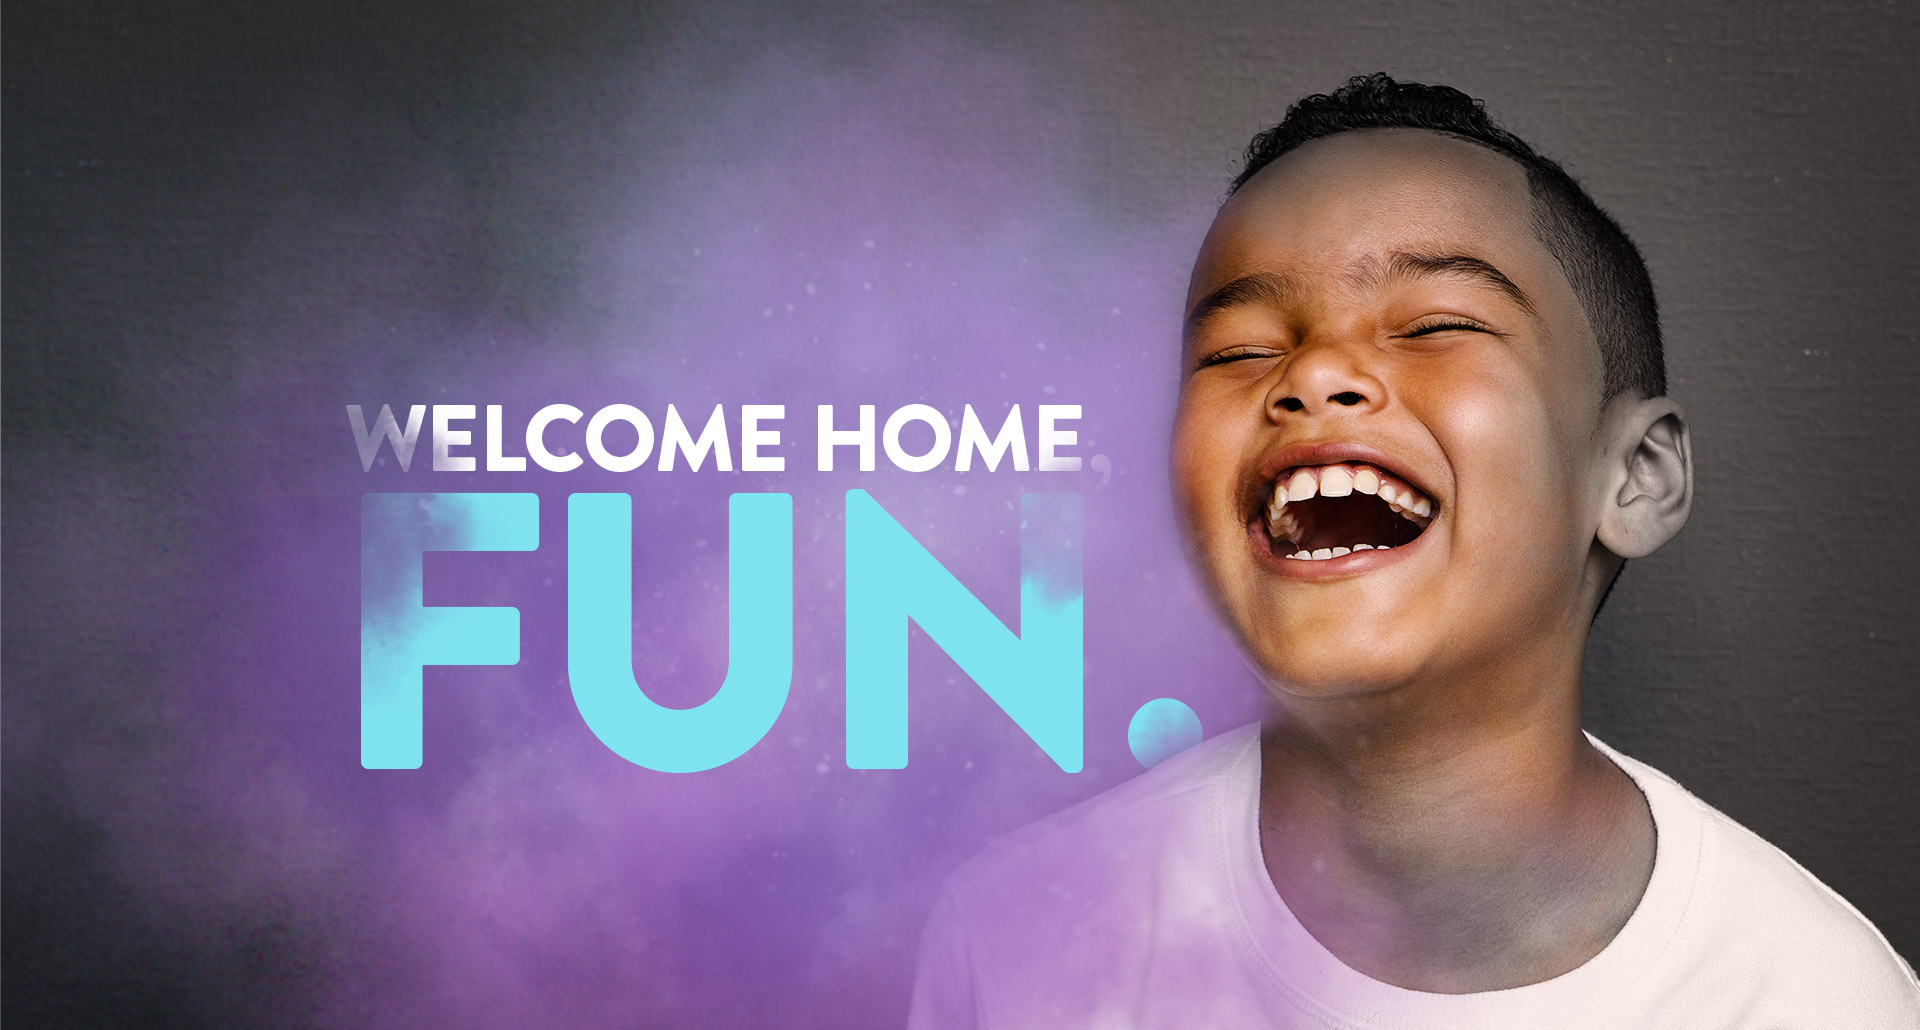 A smiling child who has Asperger's / Autism Spectrum Disorder with the words 'Welcome home, fun.' overlaid